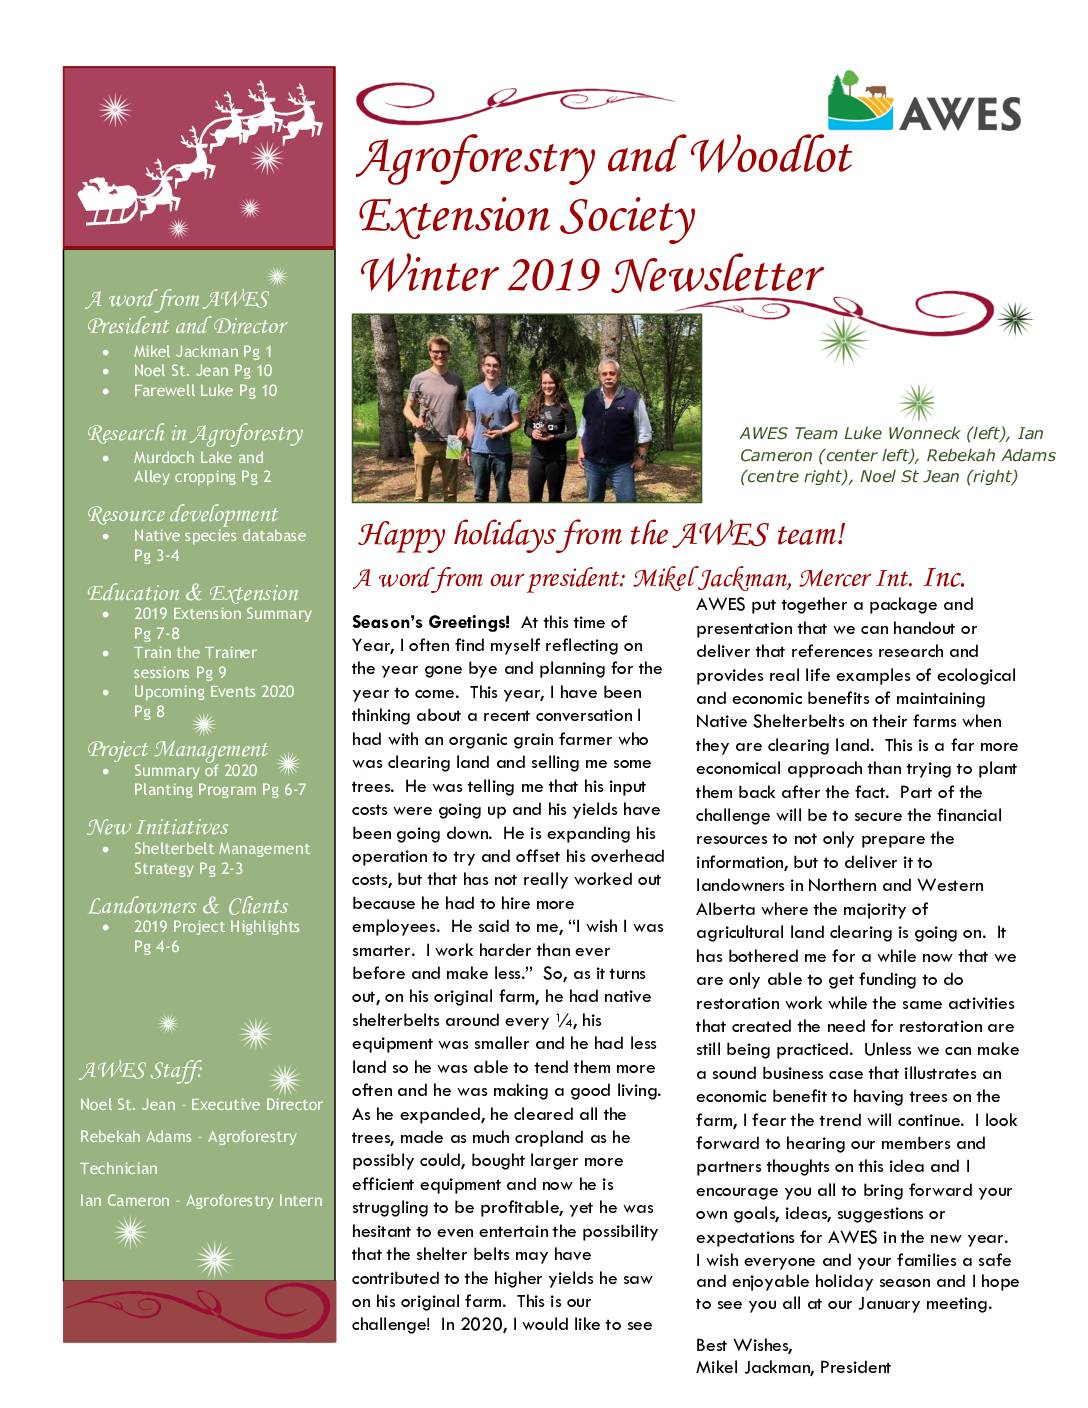 AWES Winter 2019 Newsletter